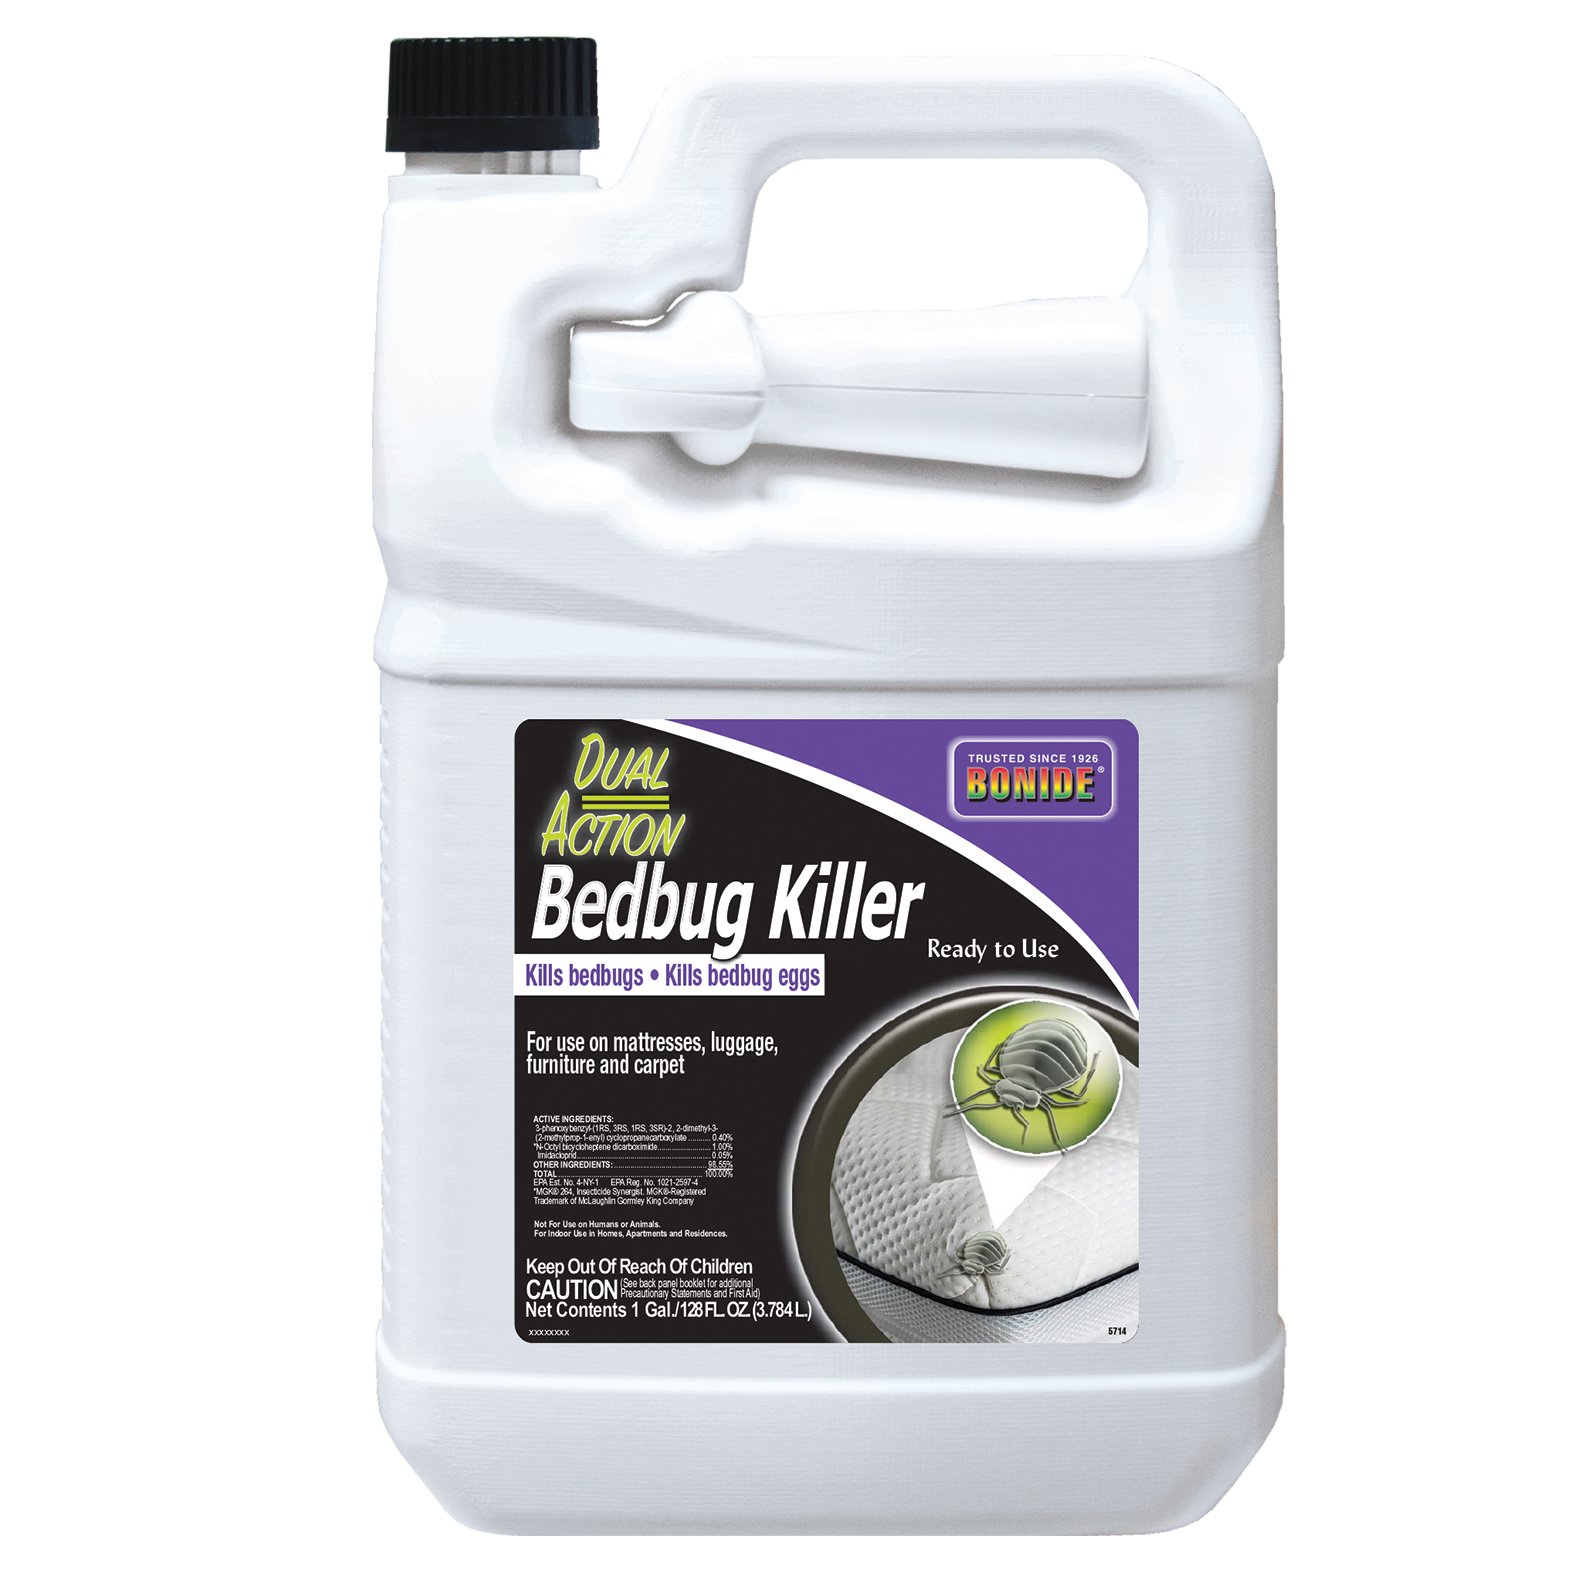 Bonide Products 5714 1G Rtu Da Bedbug Killer by Bonide